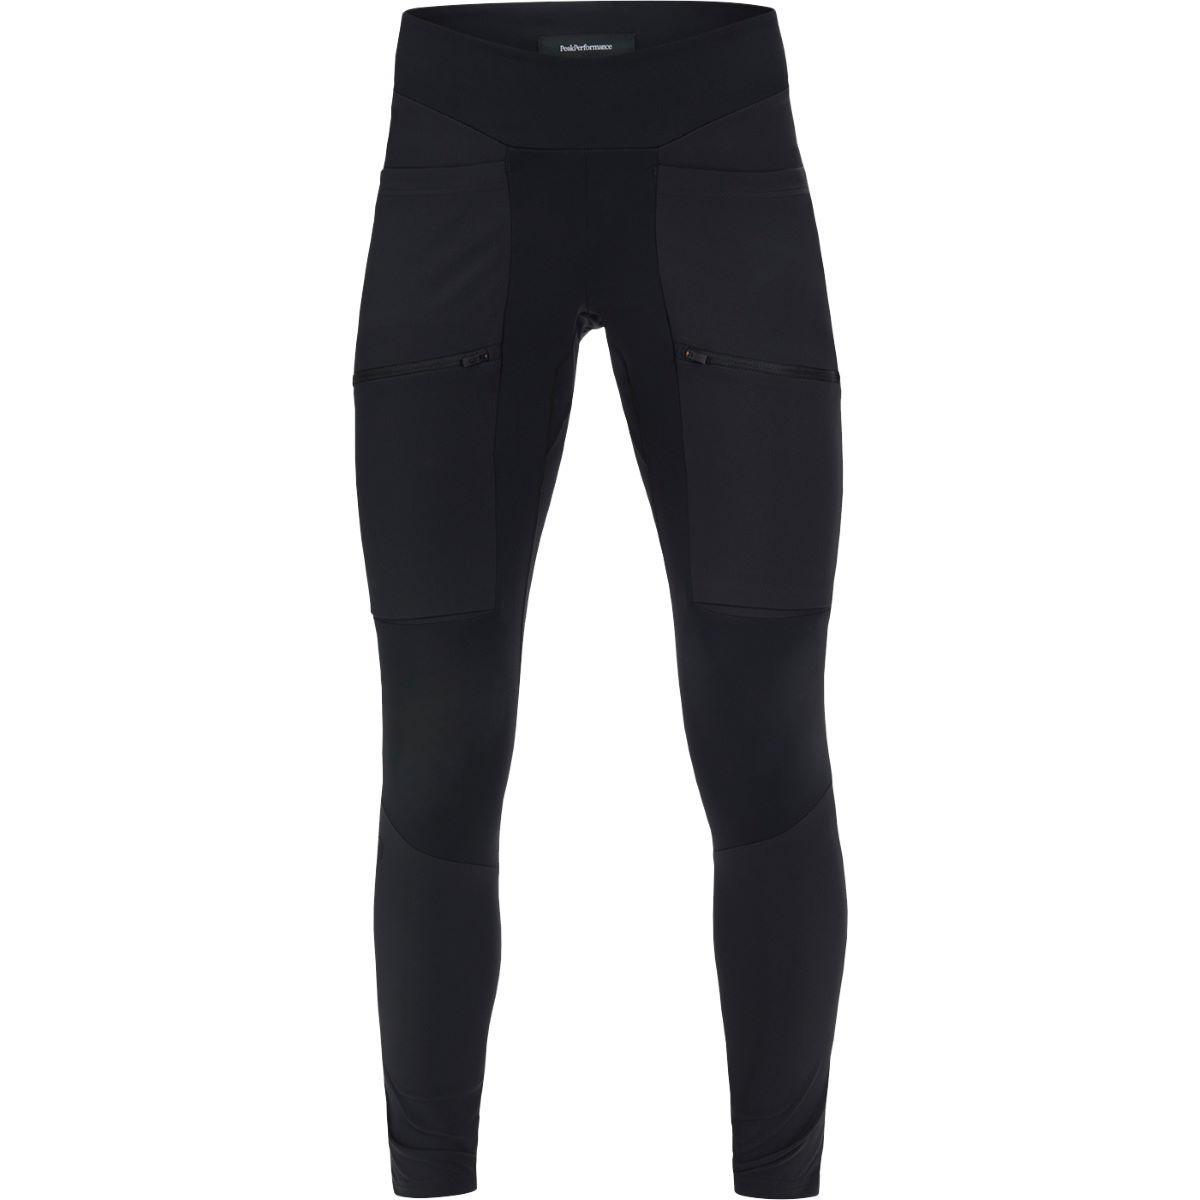 Peak Performance Women's Track Tights - S Black | Running Tights